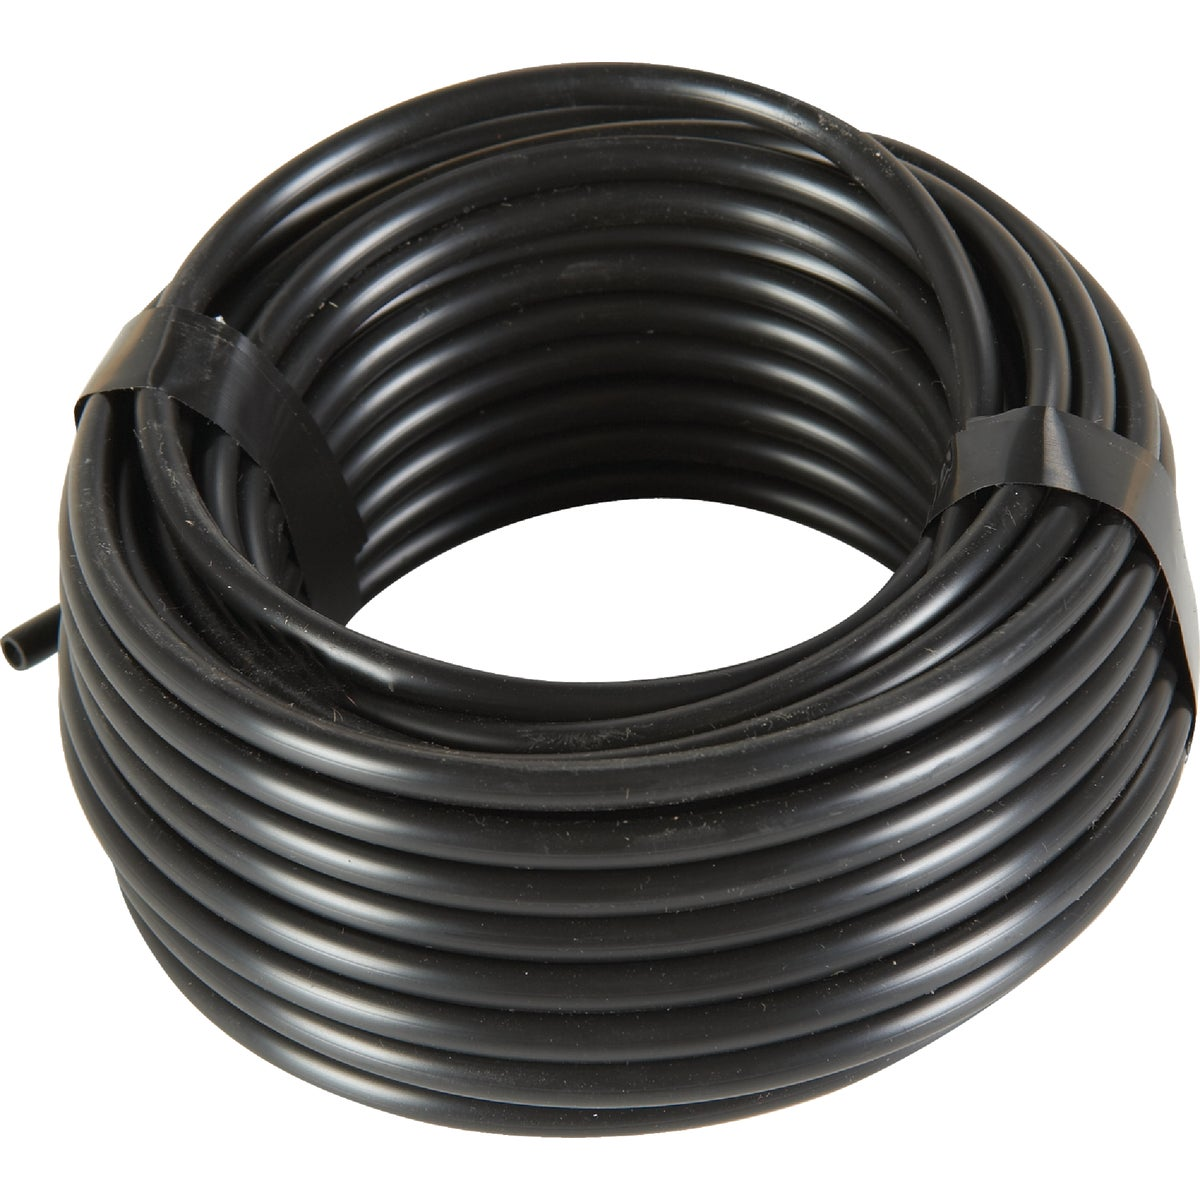 "1/4""X50' BLACK TUBING - 016005P by Raindrip Inc"